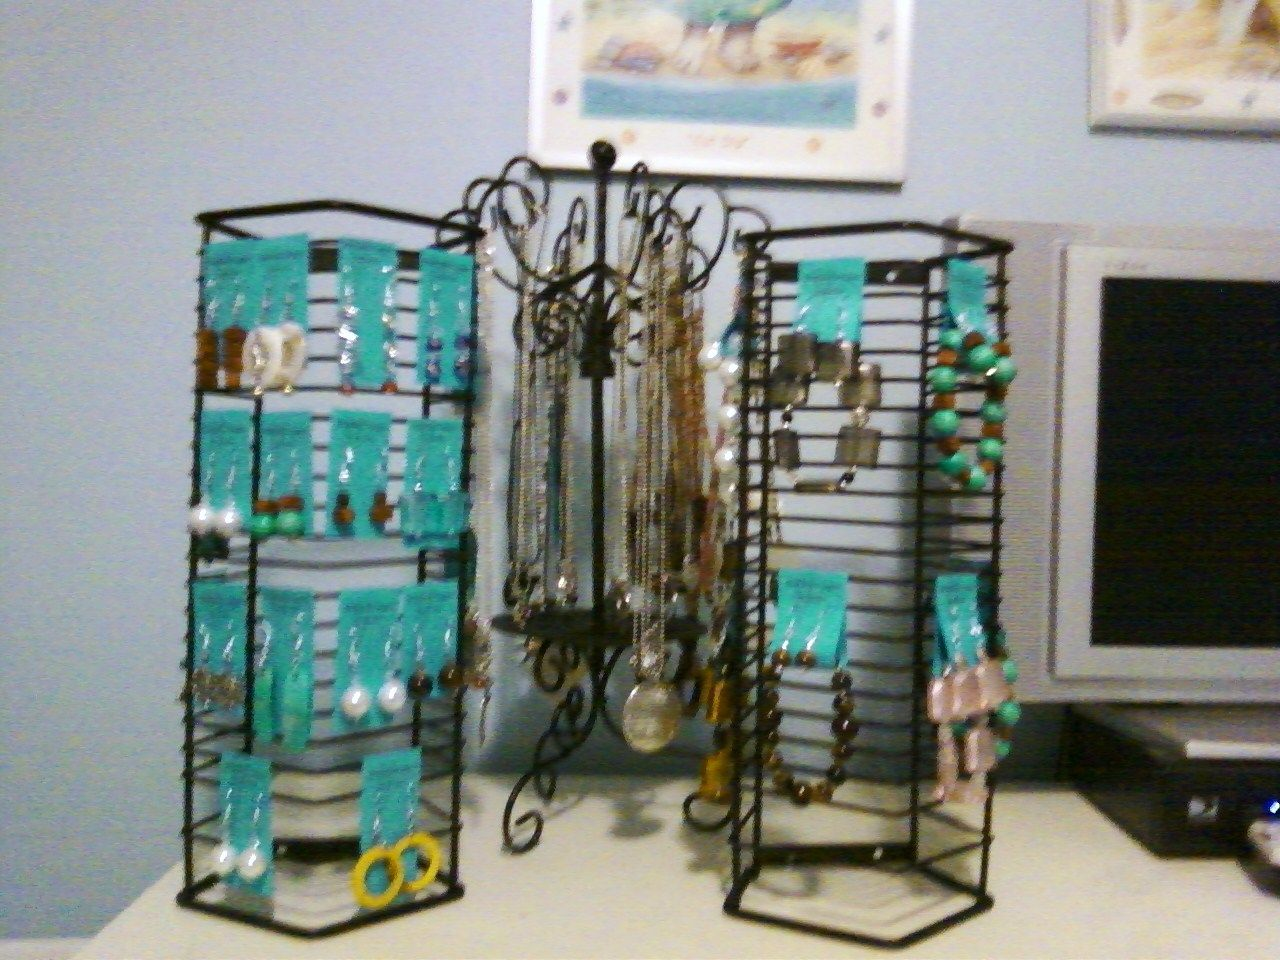 Store displays for my jewelry wire cd racks from thrift for Jewelry consignment shops near me